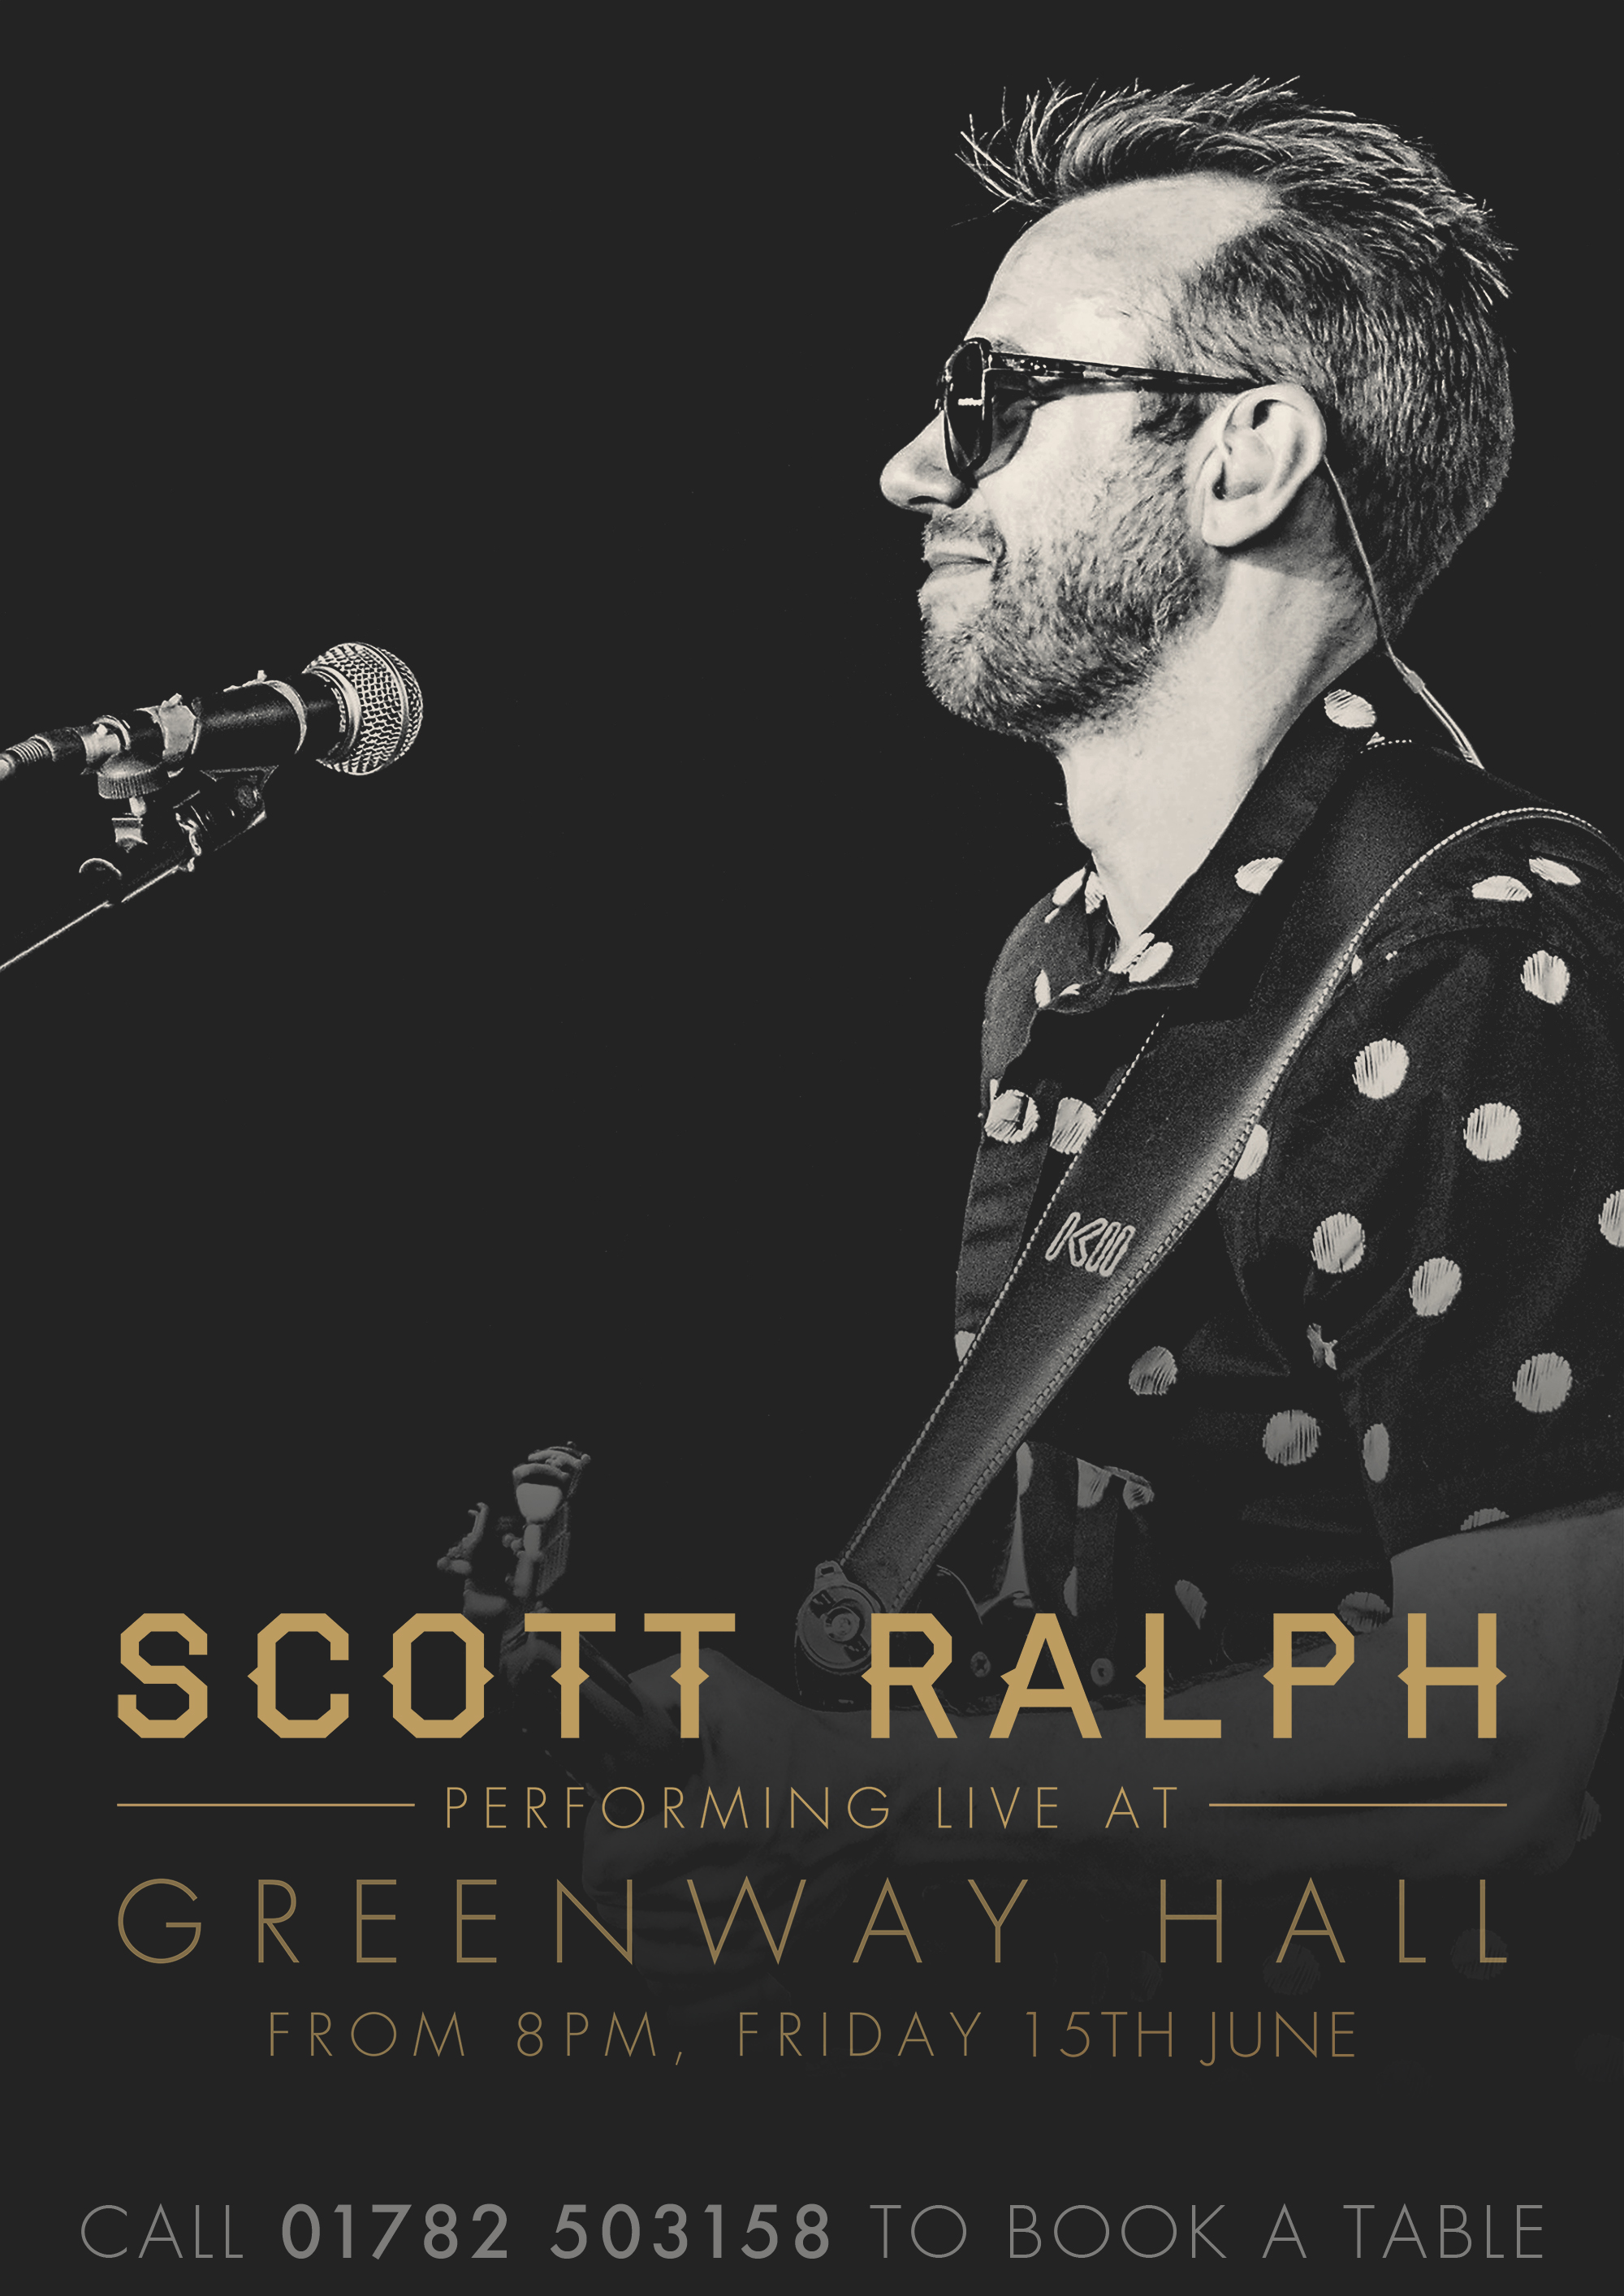 Scott Ralph performing live this Friday 15th June